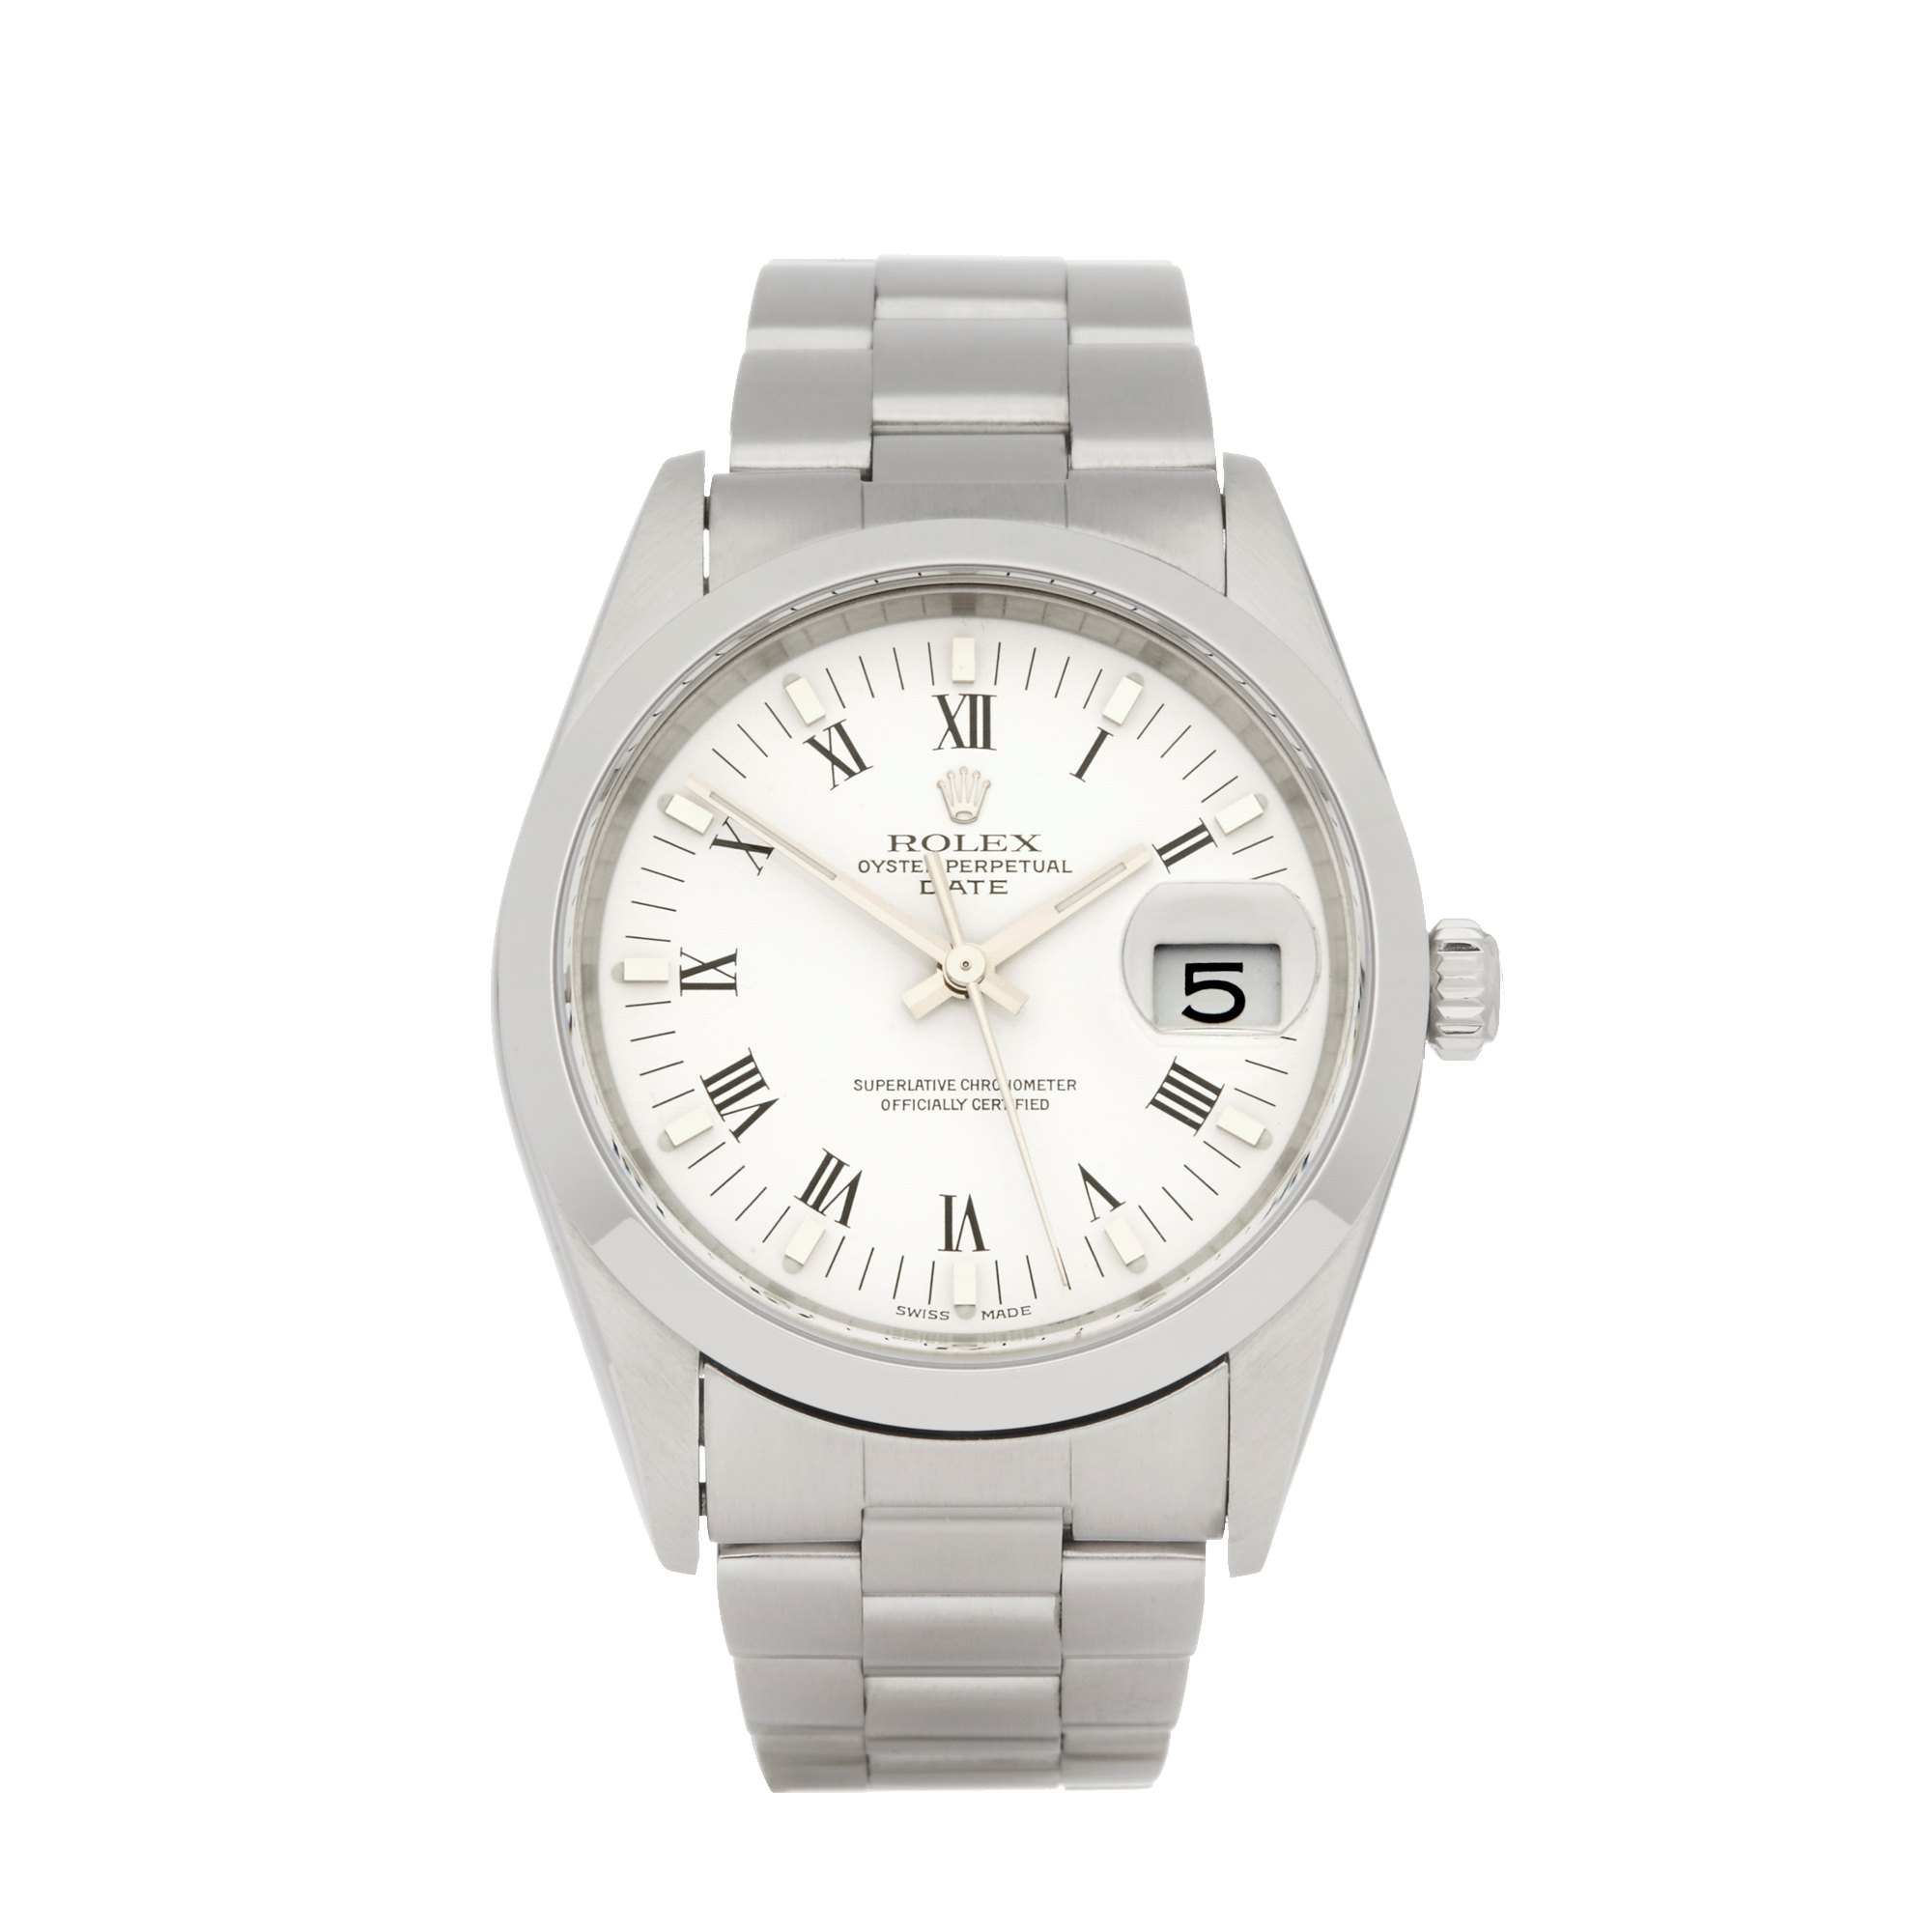 Rolex Oyster Perpetual Date Stainless Steel 15210